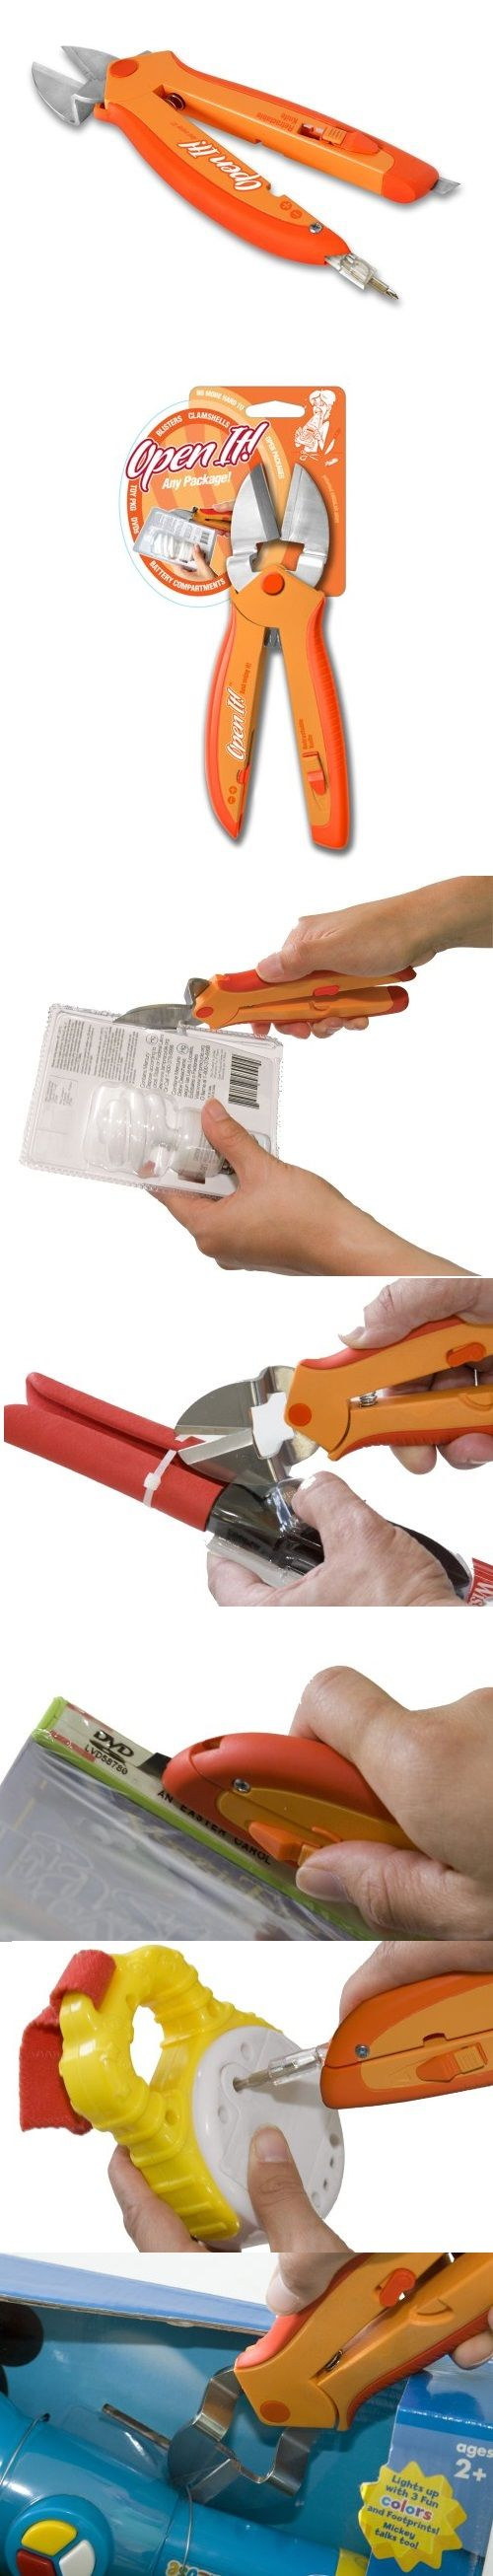 Open It Clamshell Packaging Opener Tool